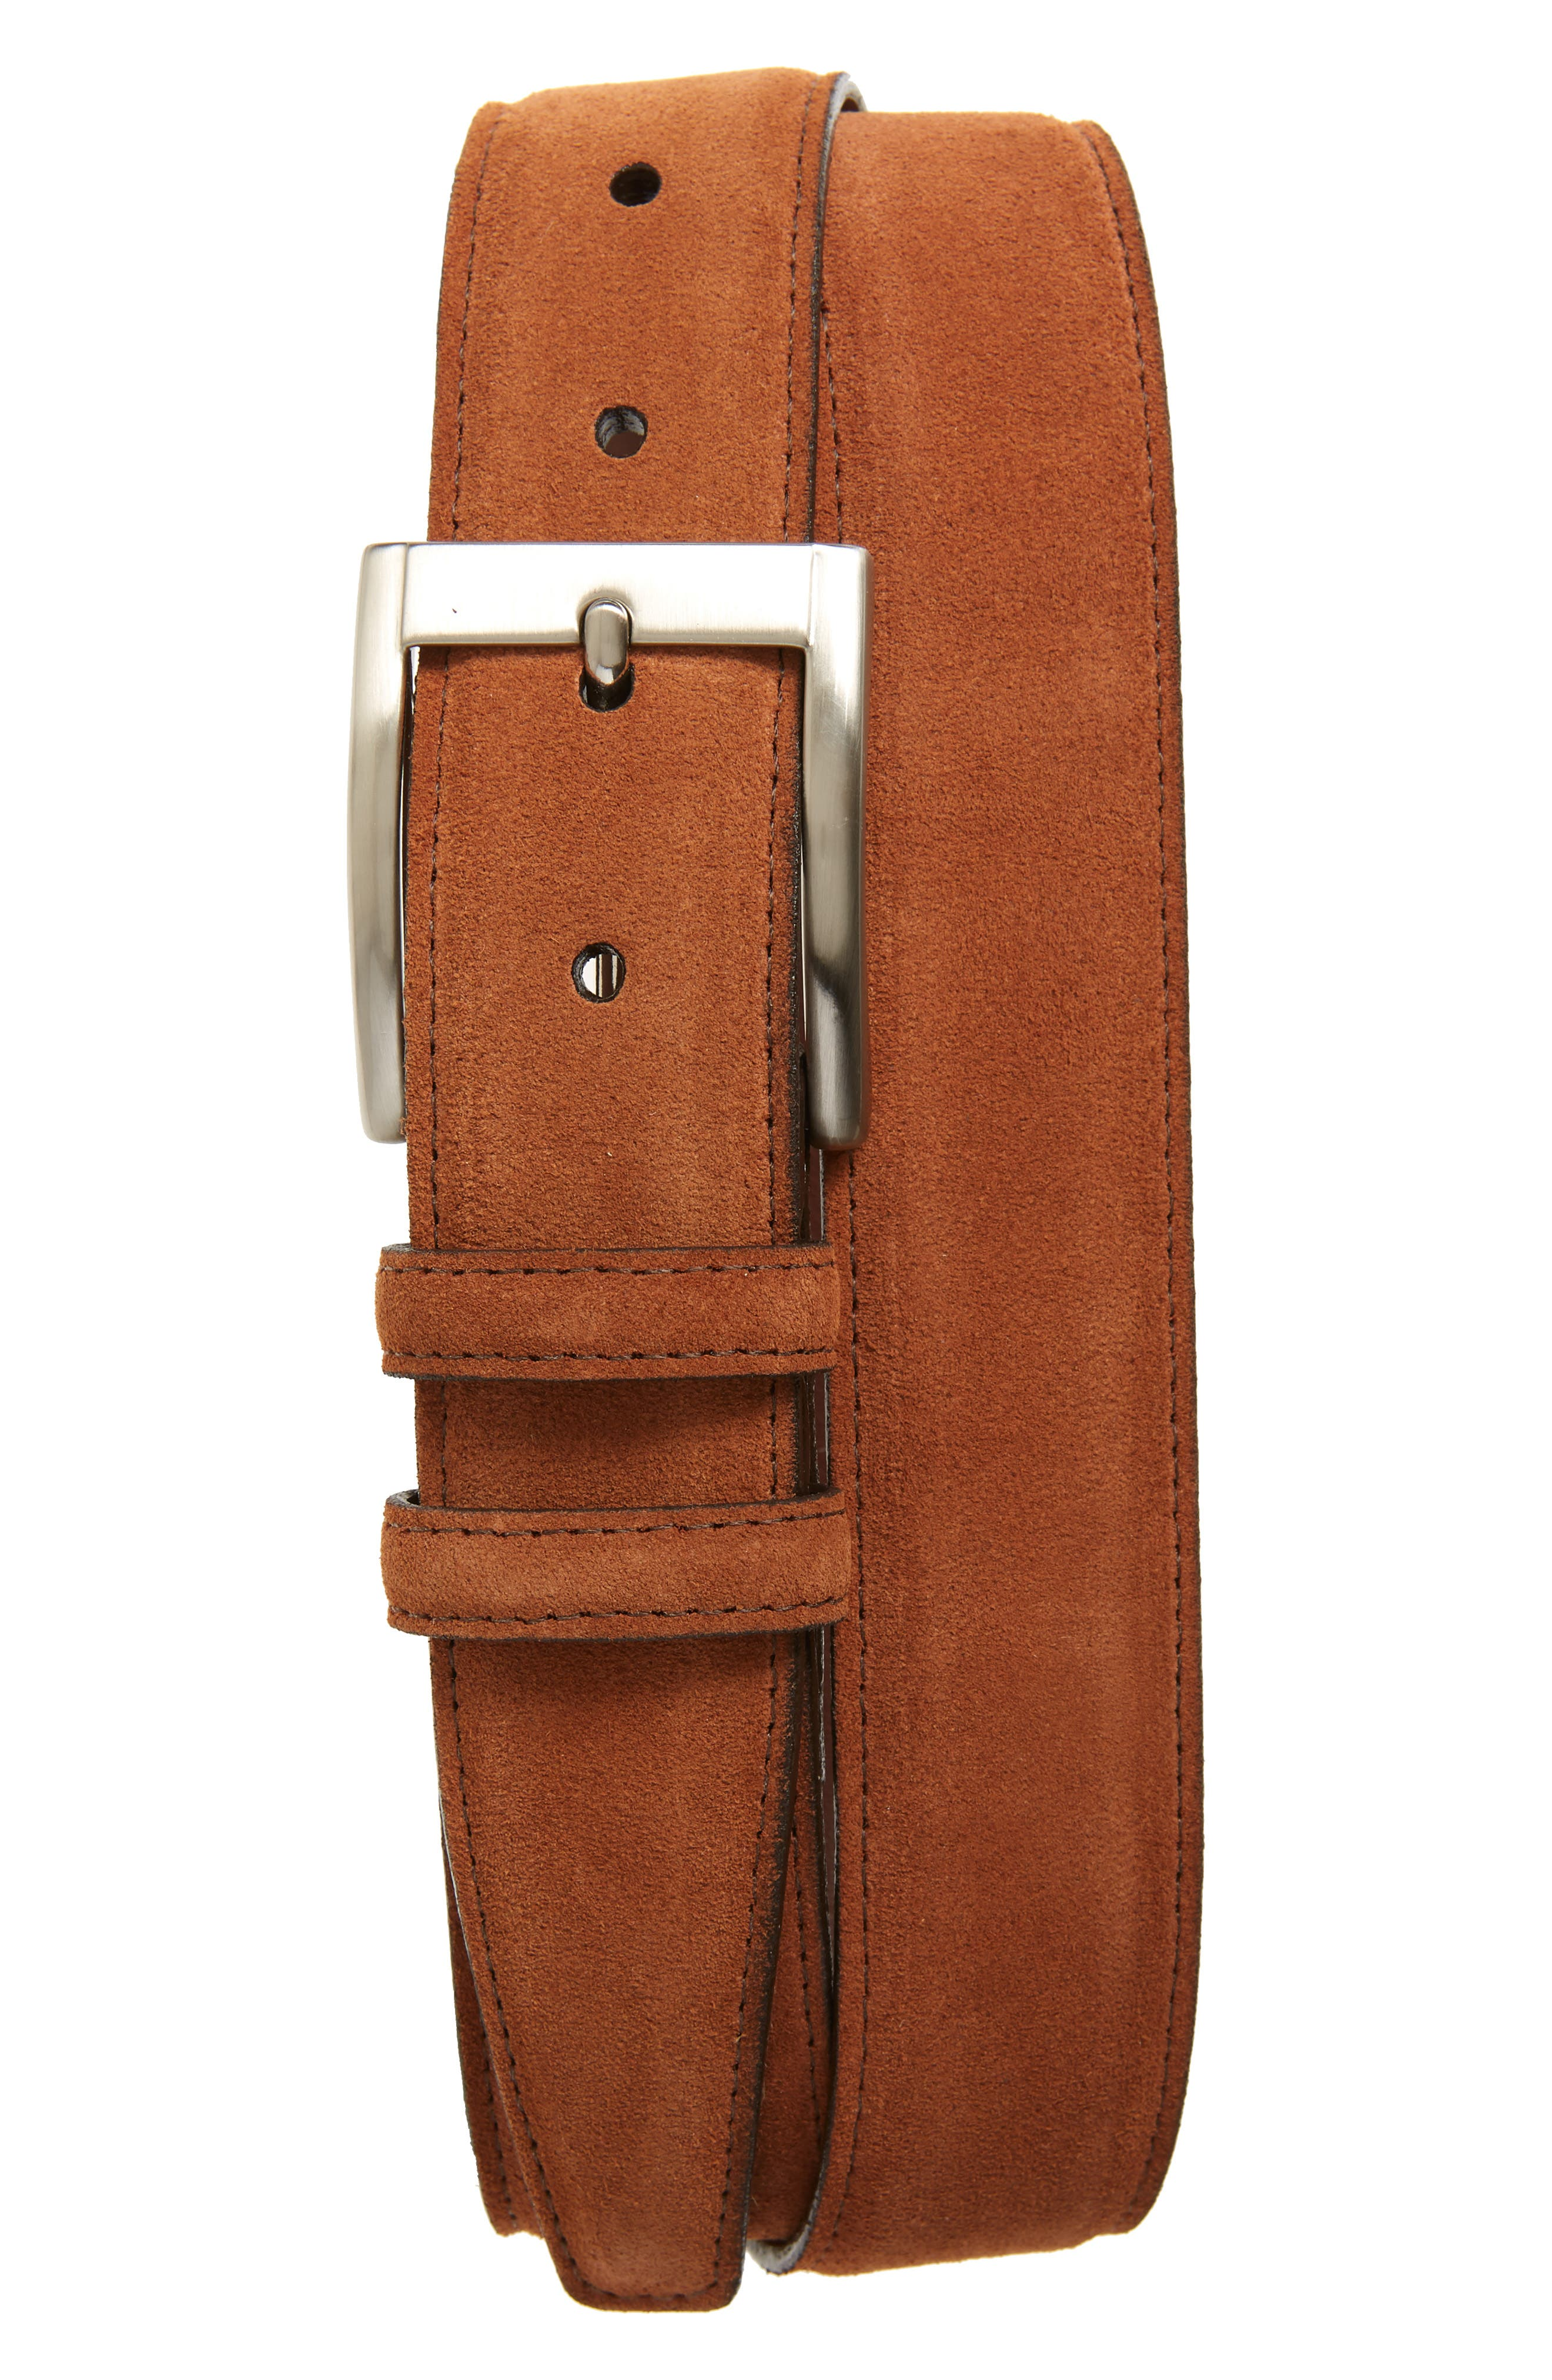 Creamy calfskin suede adds exotic texture to a charming, American-made belt with versatile appeal. Style Name: Torino Calfskin Suede Belt. Style Number: 5758257. Available in stores.